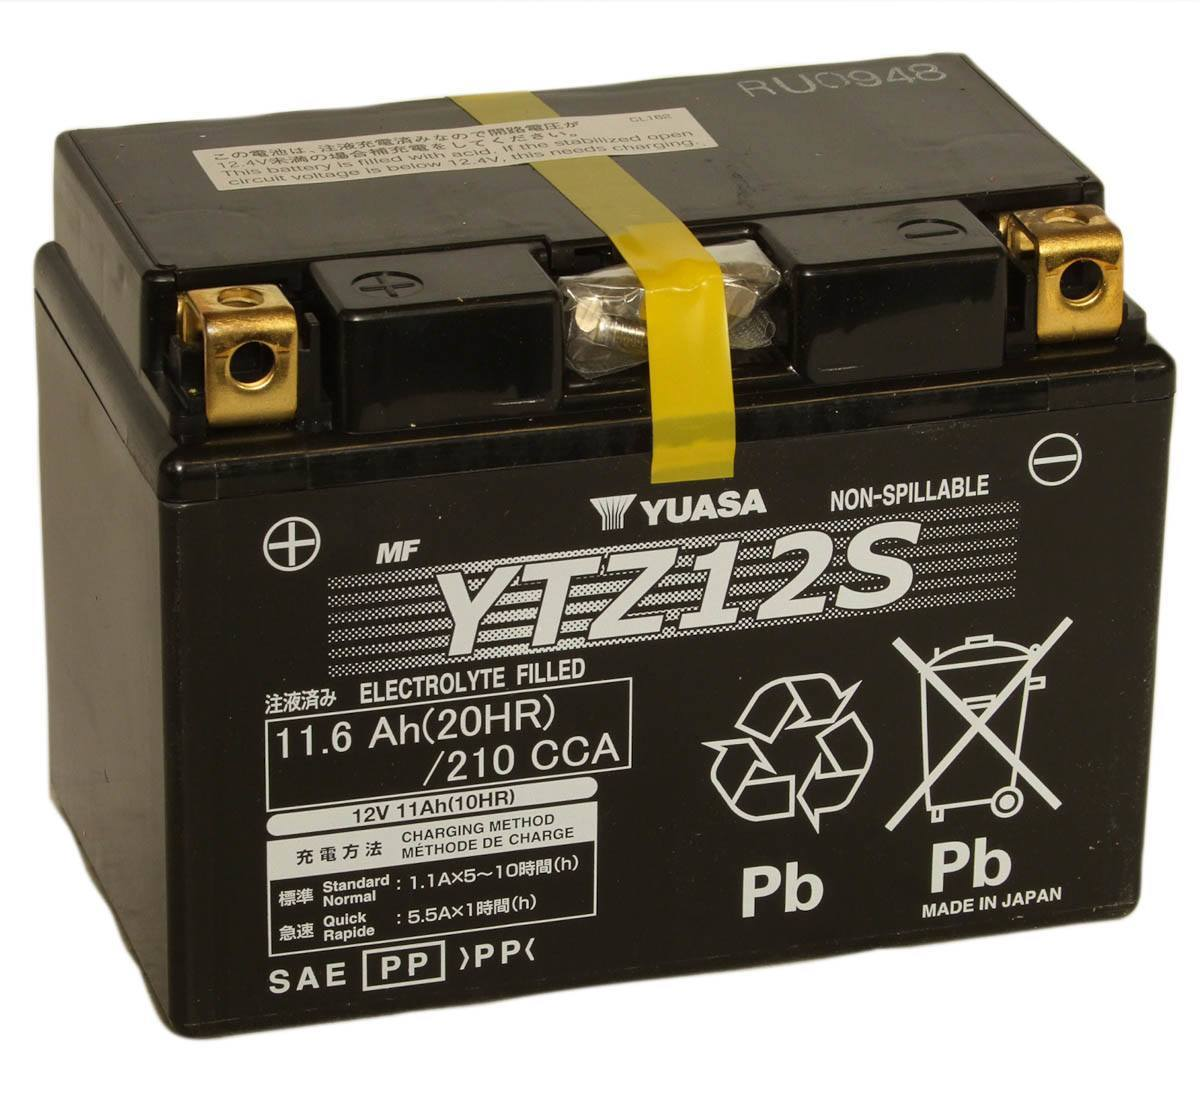 Get it delivered to your door - Yuasa YTZ12S Battery (Japan) - 3200 (EGP)